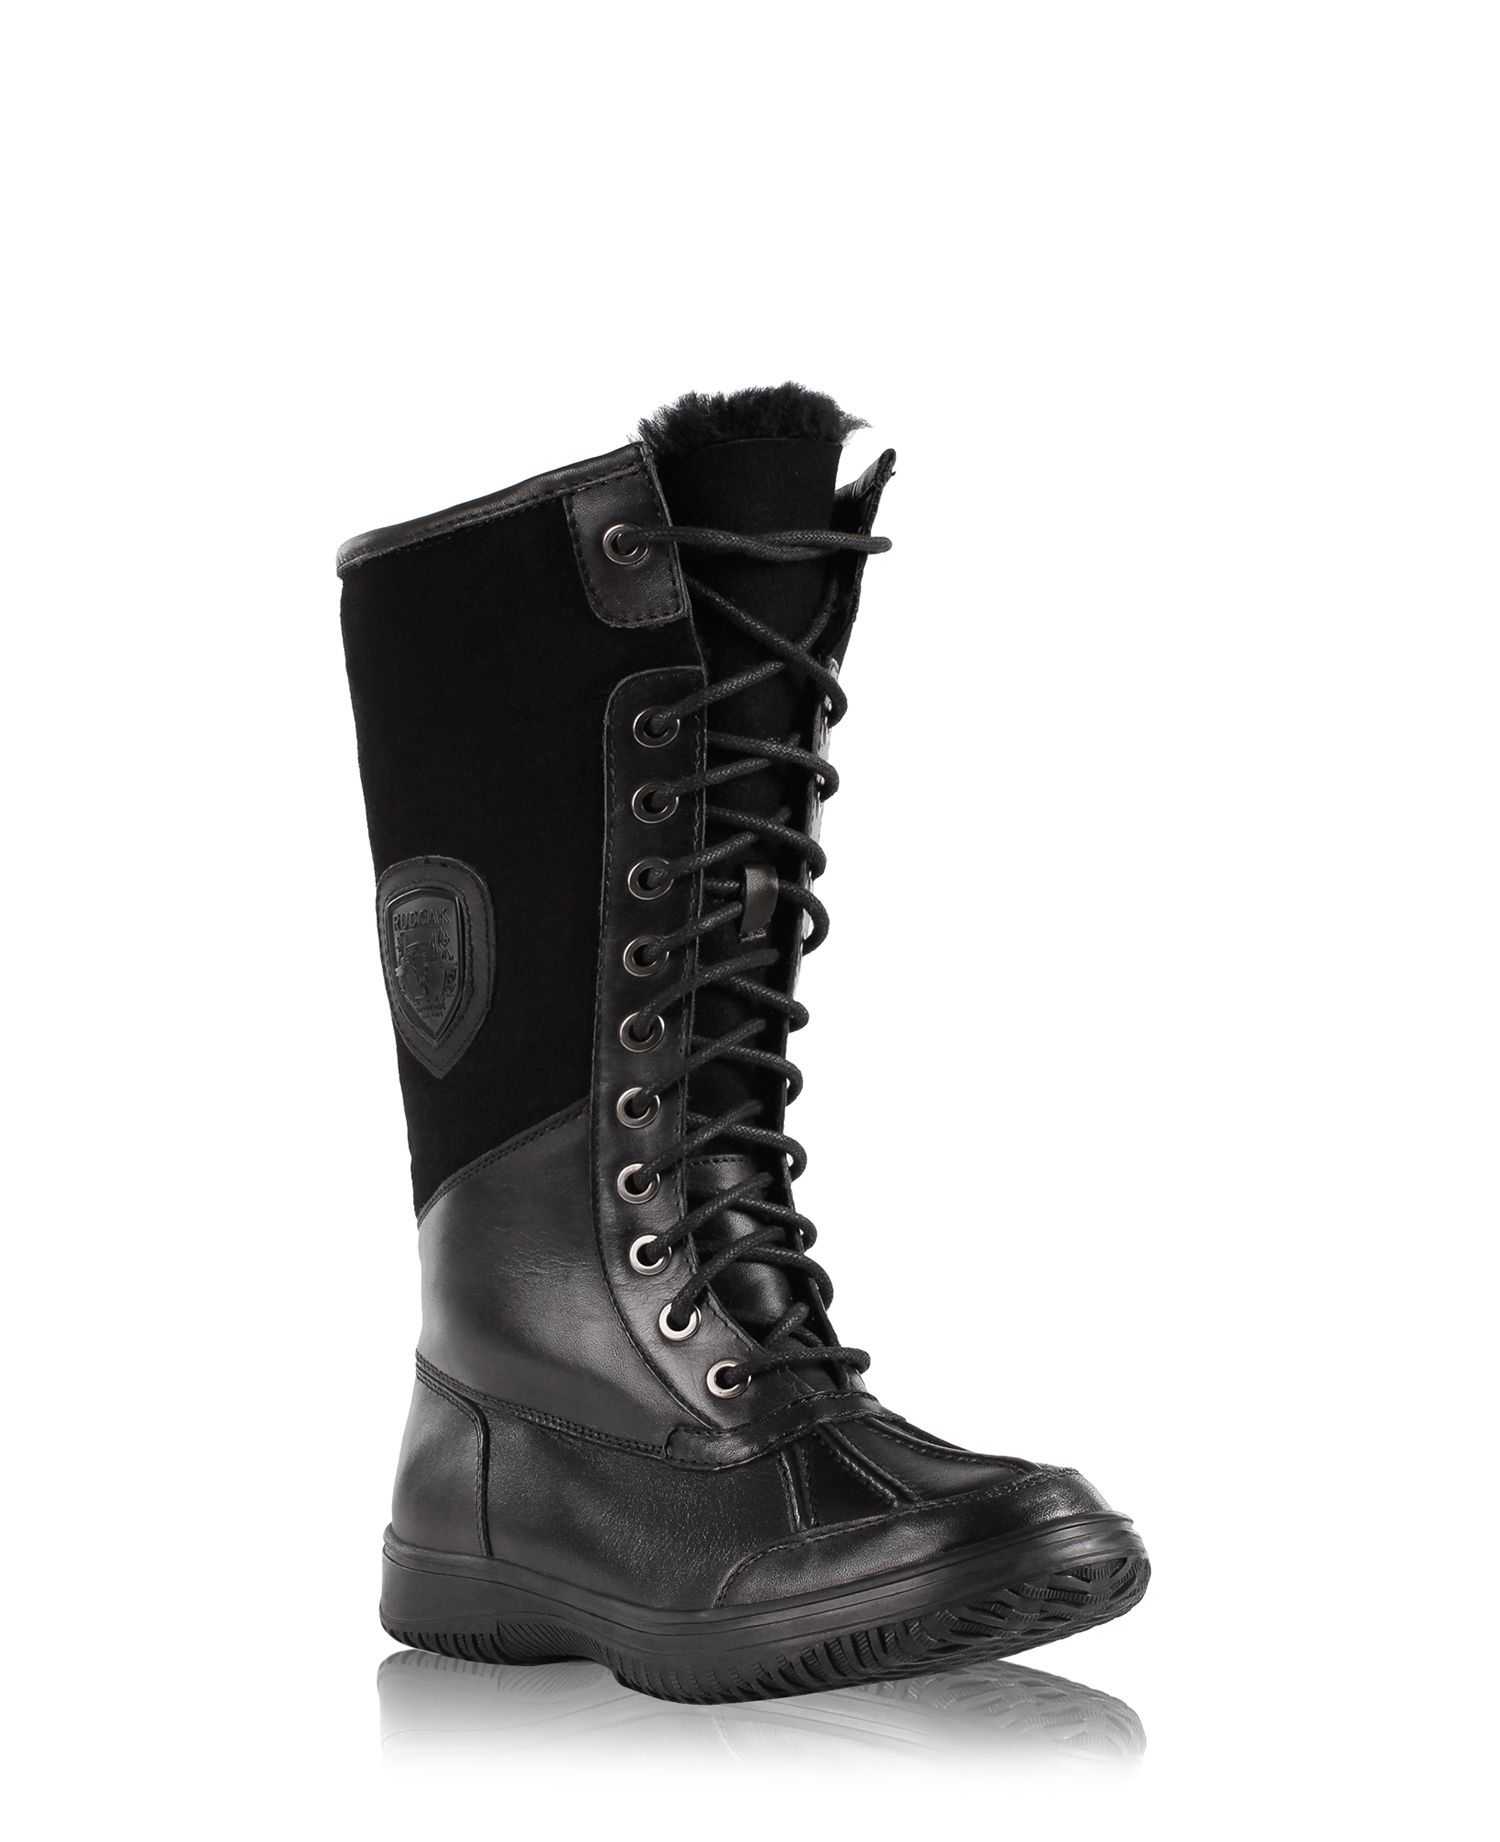 RUDSAK The Winter Enthusiasts (BLACK, NEW LOOK WATERPROOF LEATHER WITH SUEDE) | BUENA